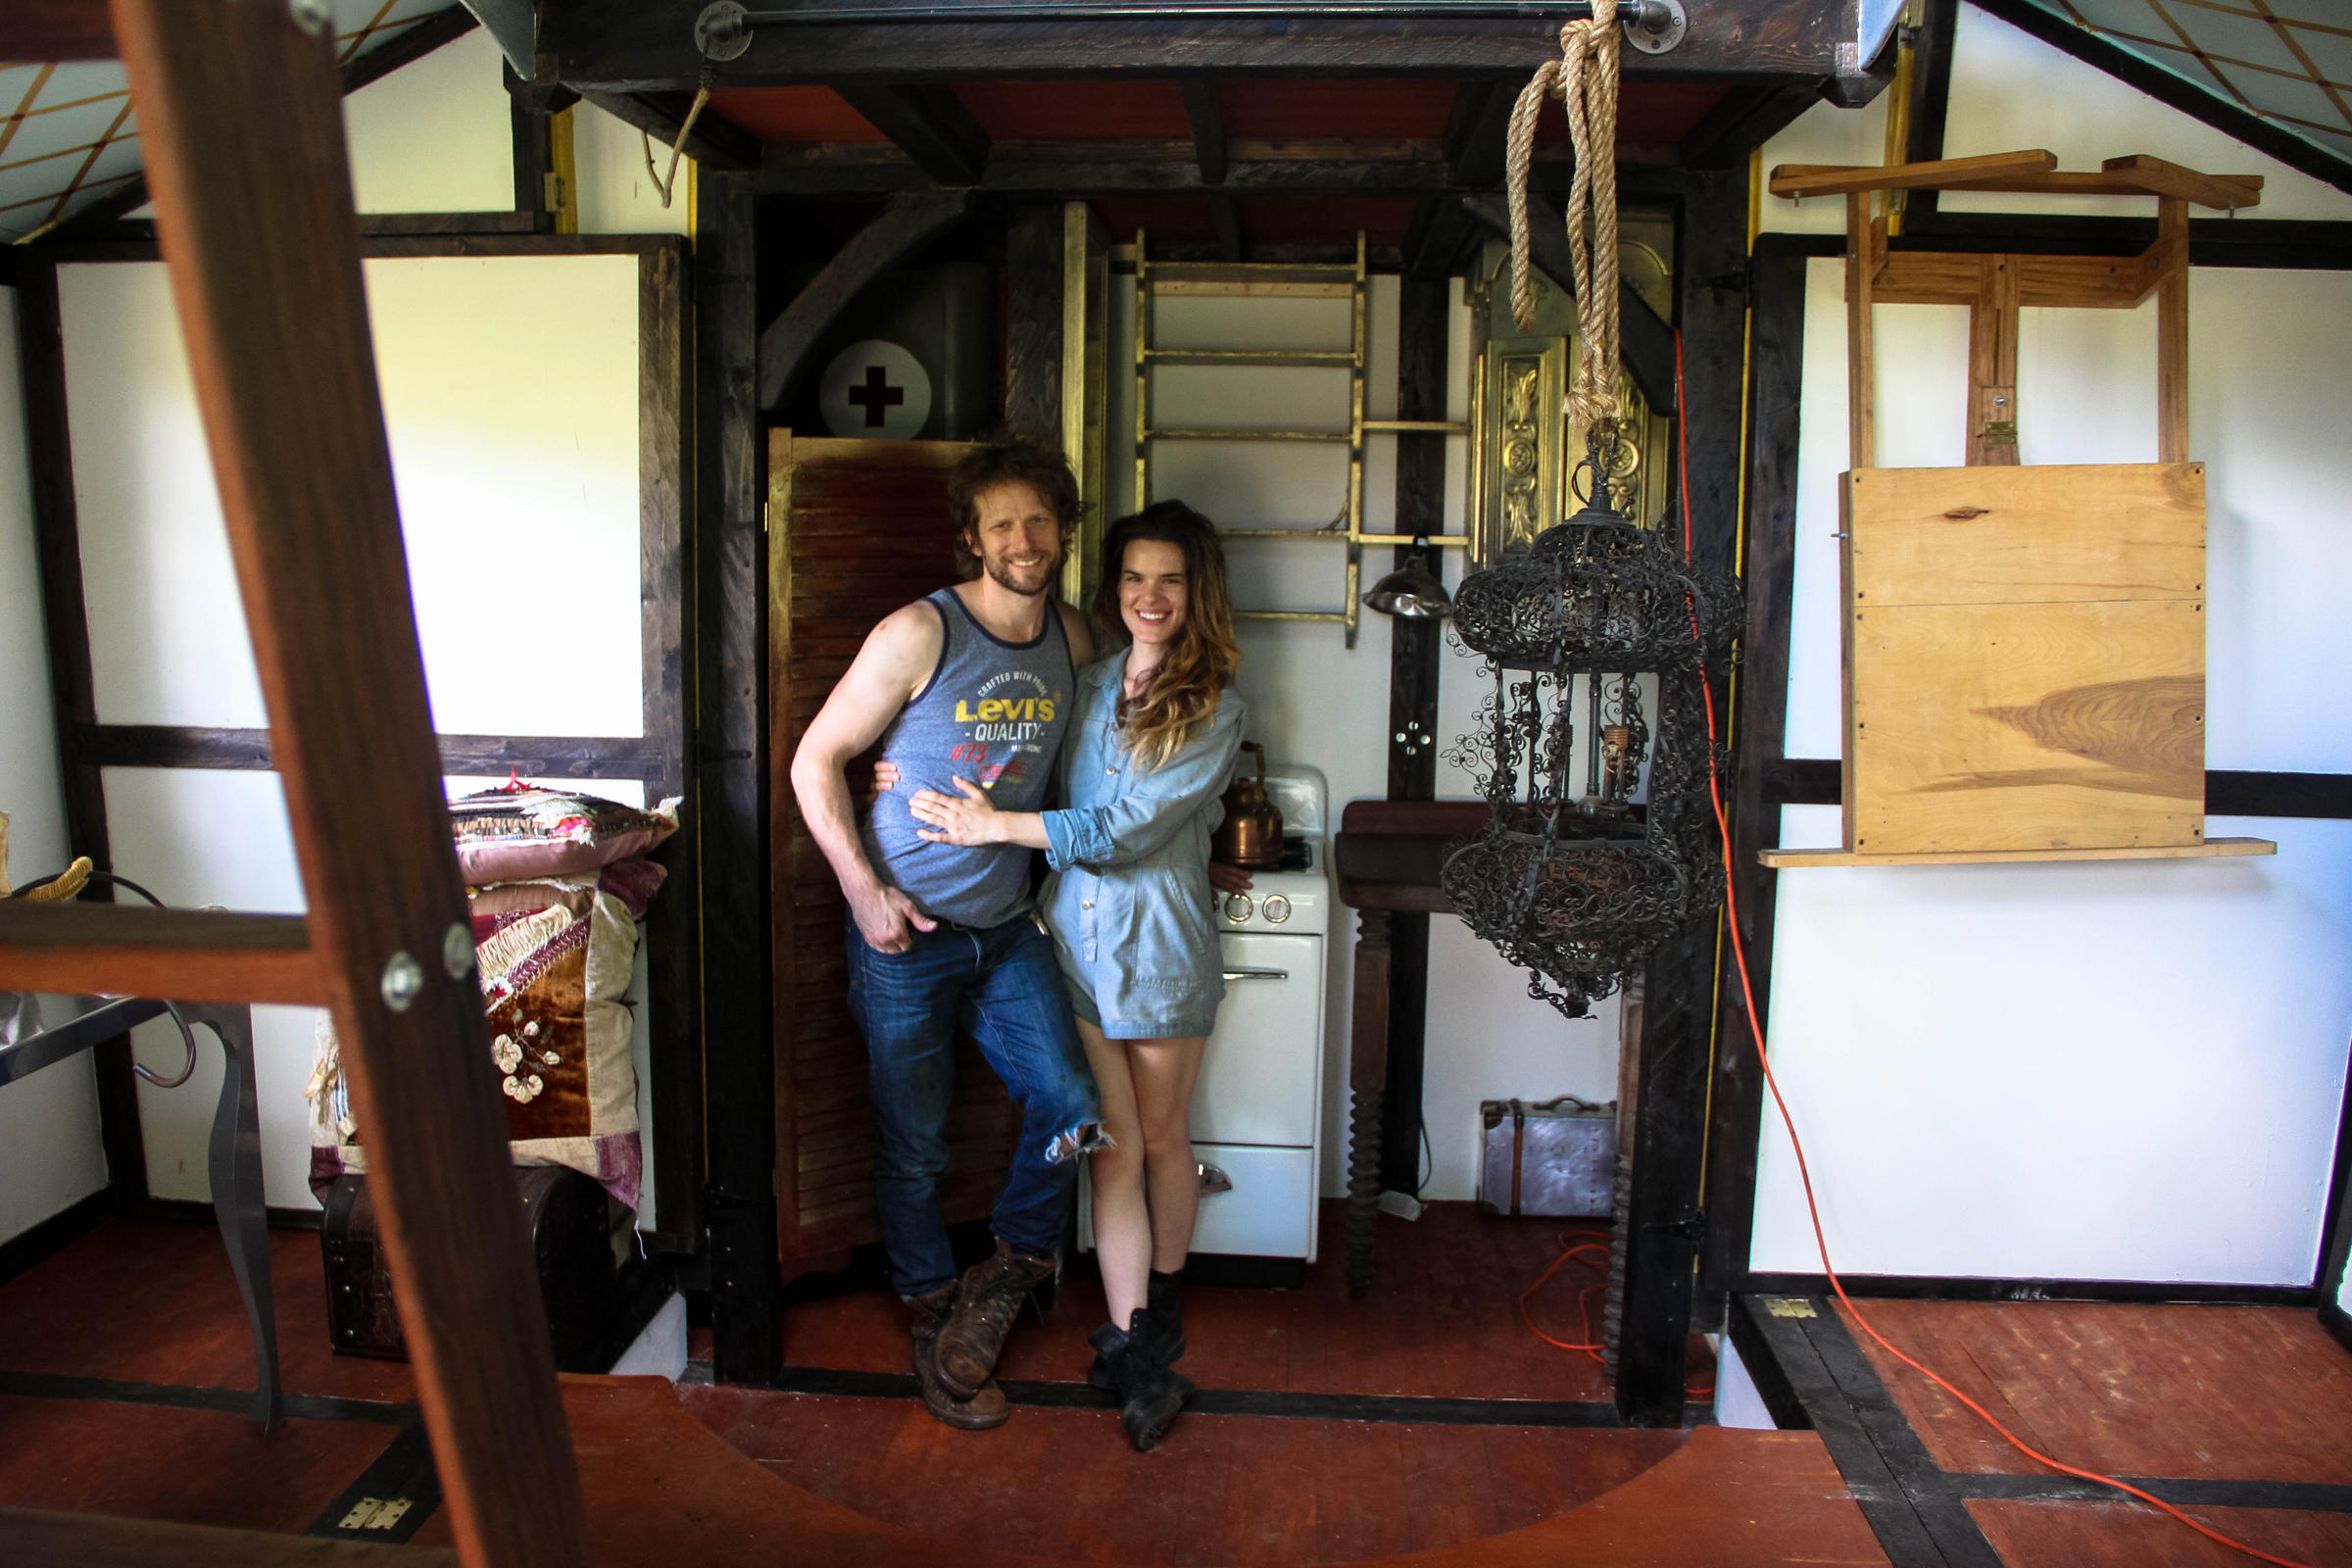 Pleasing Steampunk Steamer Trunk A Tiny House Contraption On Wheels Home Interior And Landscaping Oversignezvosmurscom